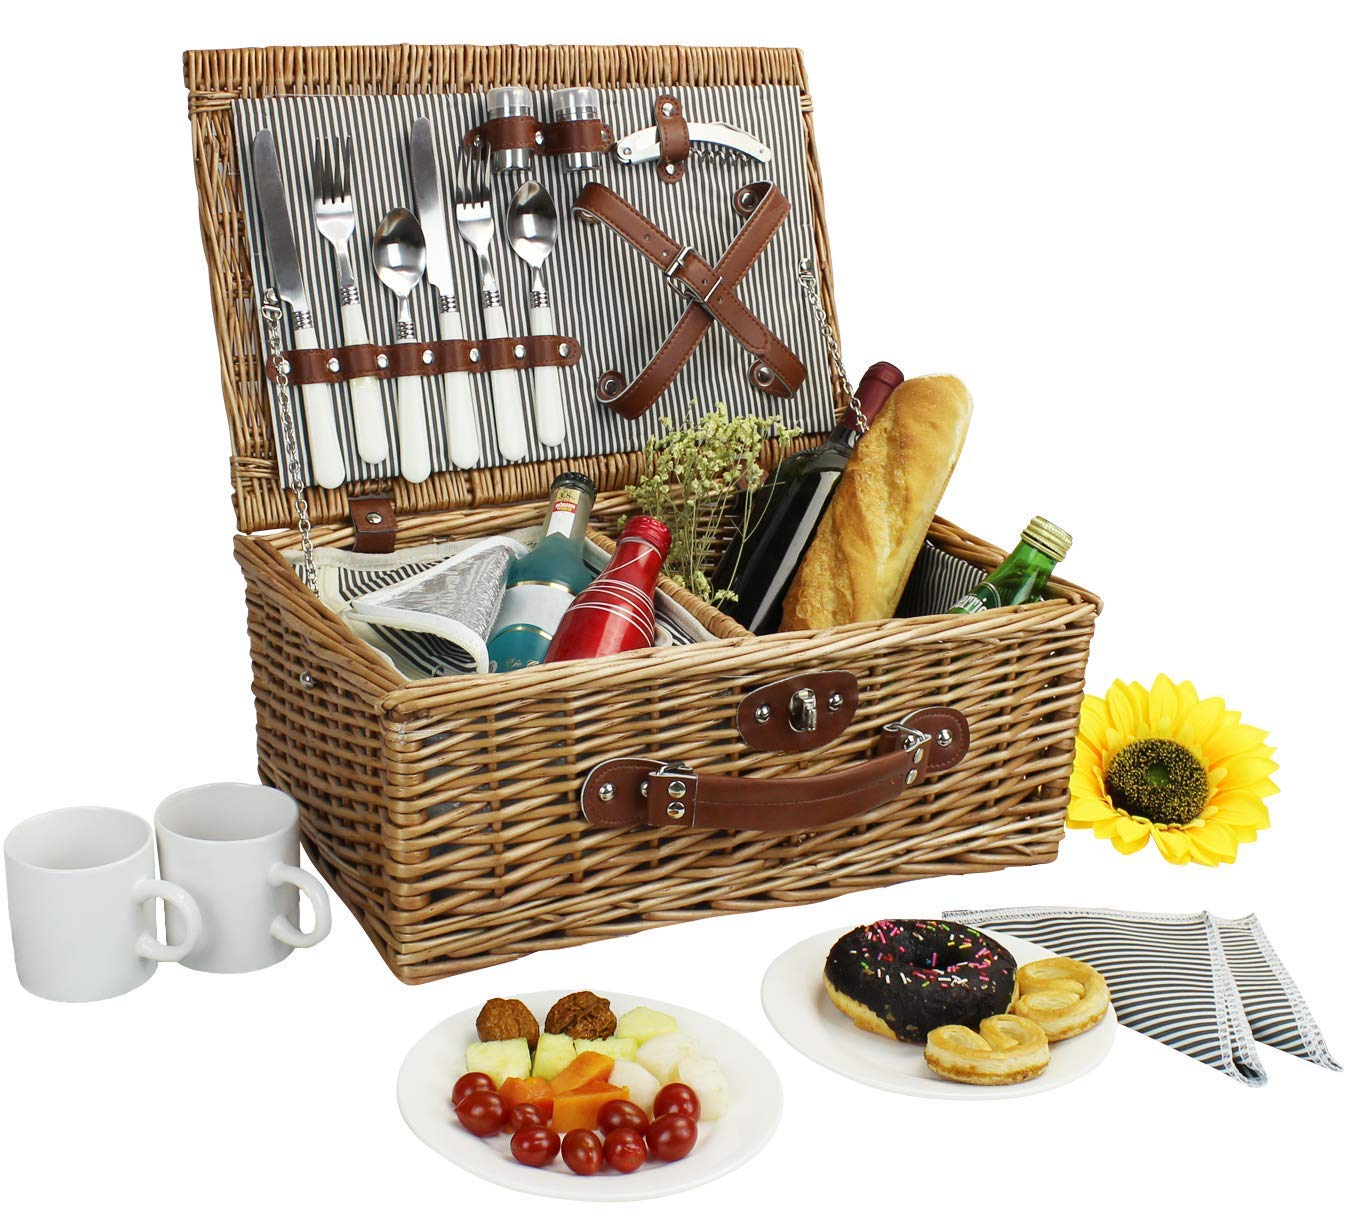 Picnic Basket for 2, Willow Hamper Set with Insulated Compartment, Handmade Large Wicker Picnic Basket Set with Utensils Cutlery - Perfect for Picnicking, Camping, or any Other Outdoor Event by Home Innovation